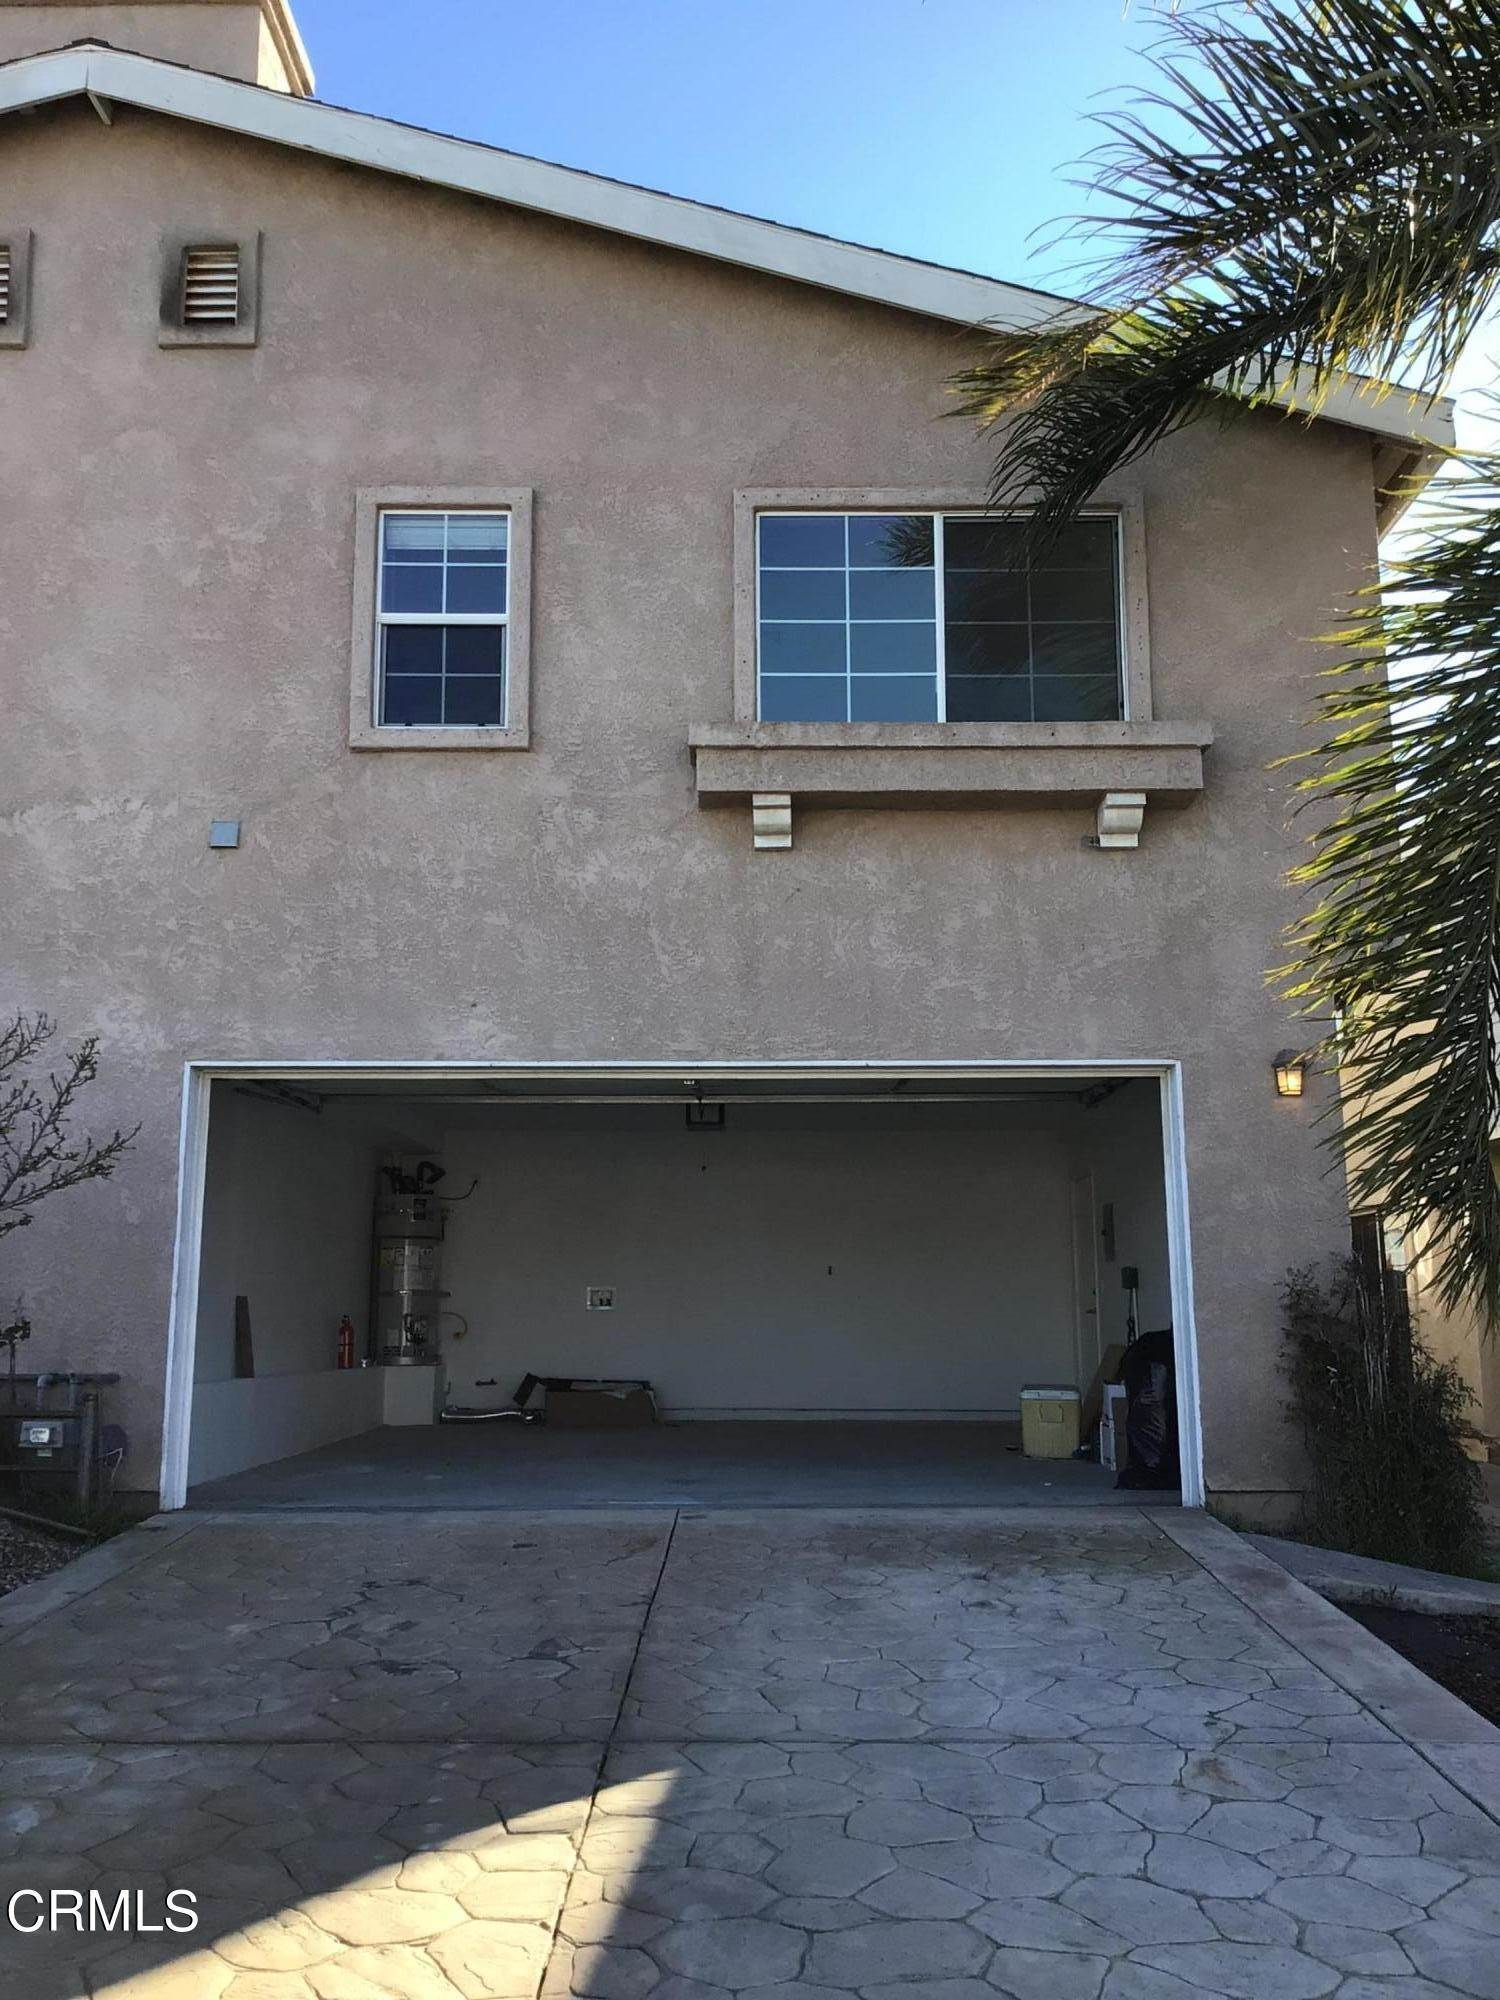 2. townhouses for Sale at 4922 Catamaran Street Oxnard, California 93035 United States